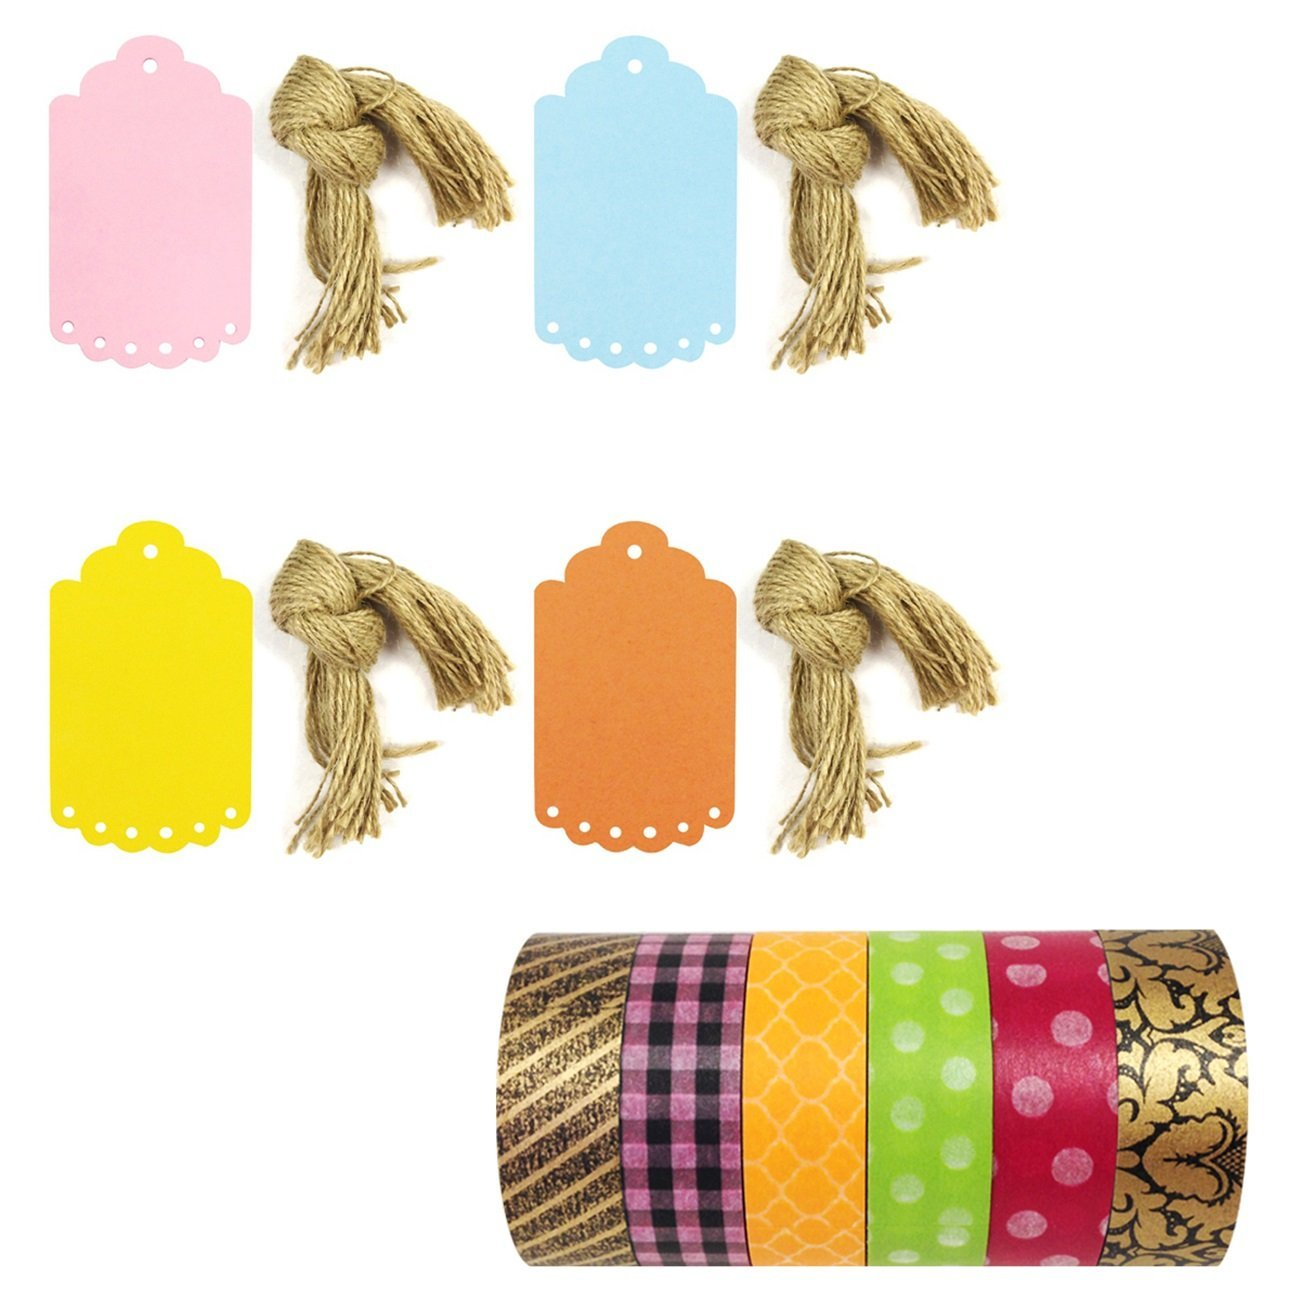 Wrapables Set of 6 Washi Tape + 40 Large Scalloped Multi-Color Gift Tags with Cut Strings